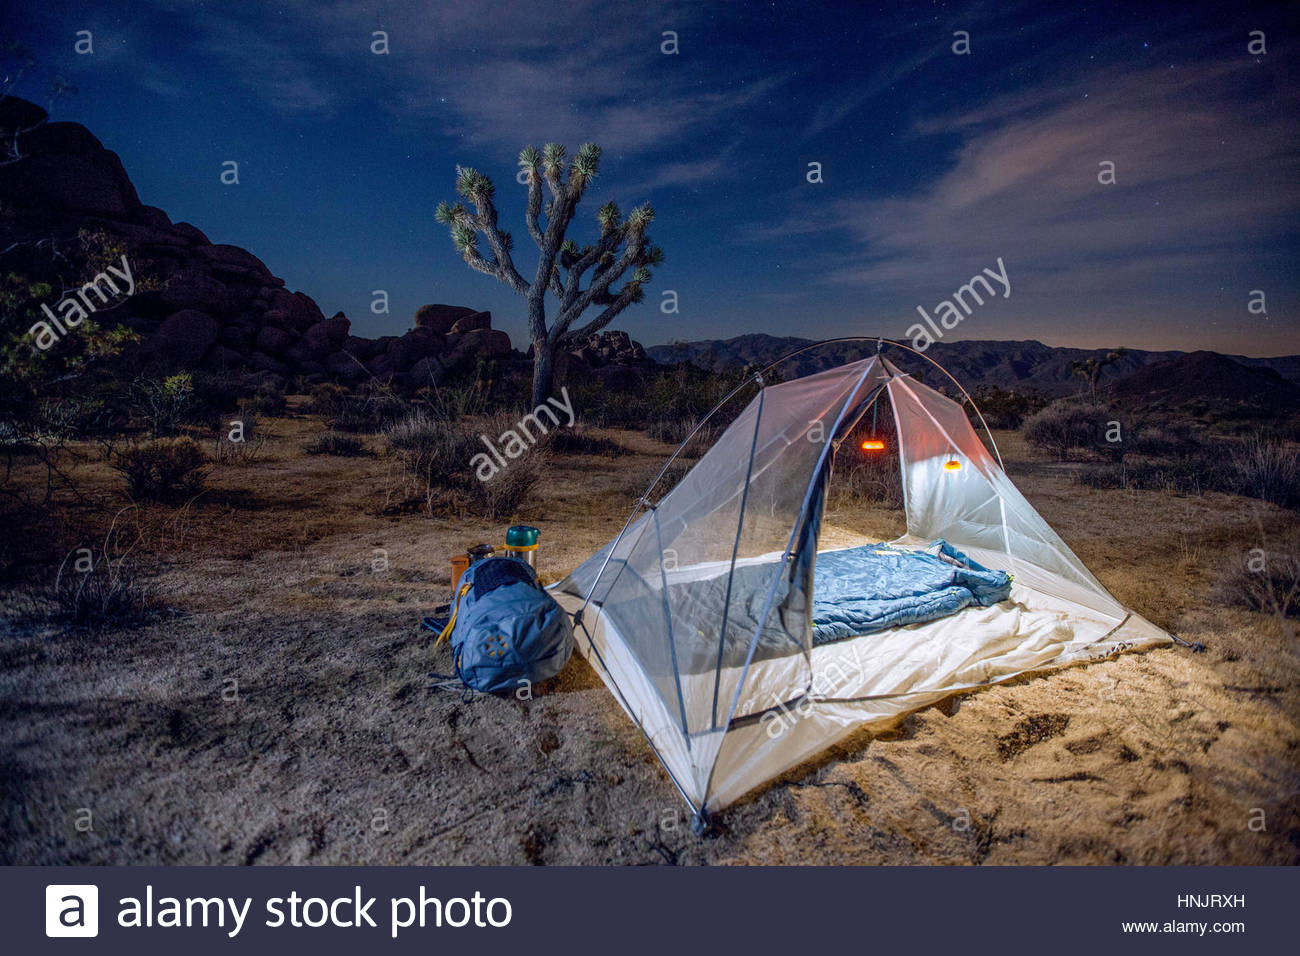 Un campeggio remoto accessibile solo da backpacking a Joshua Tree National Park. Immagini Stock